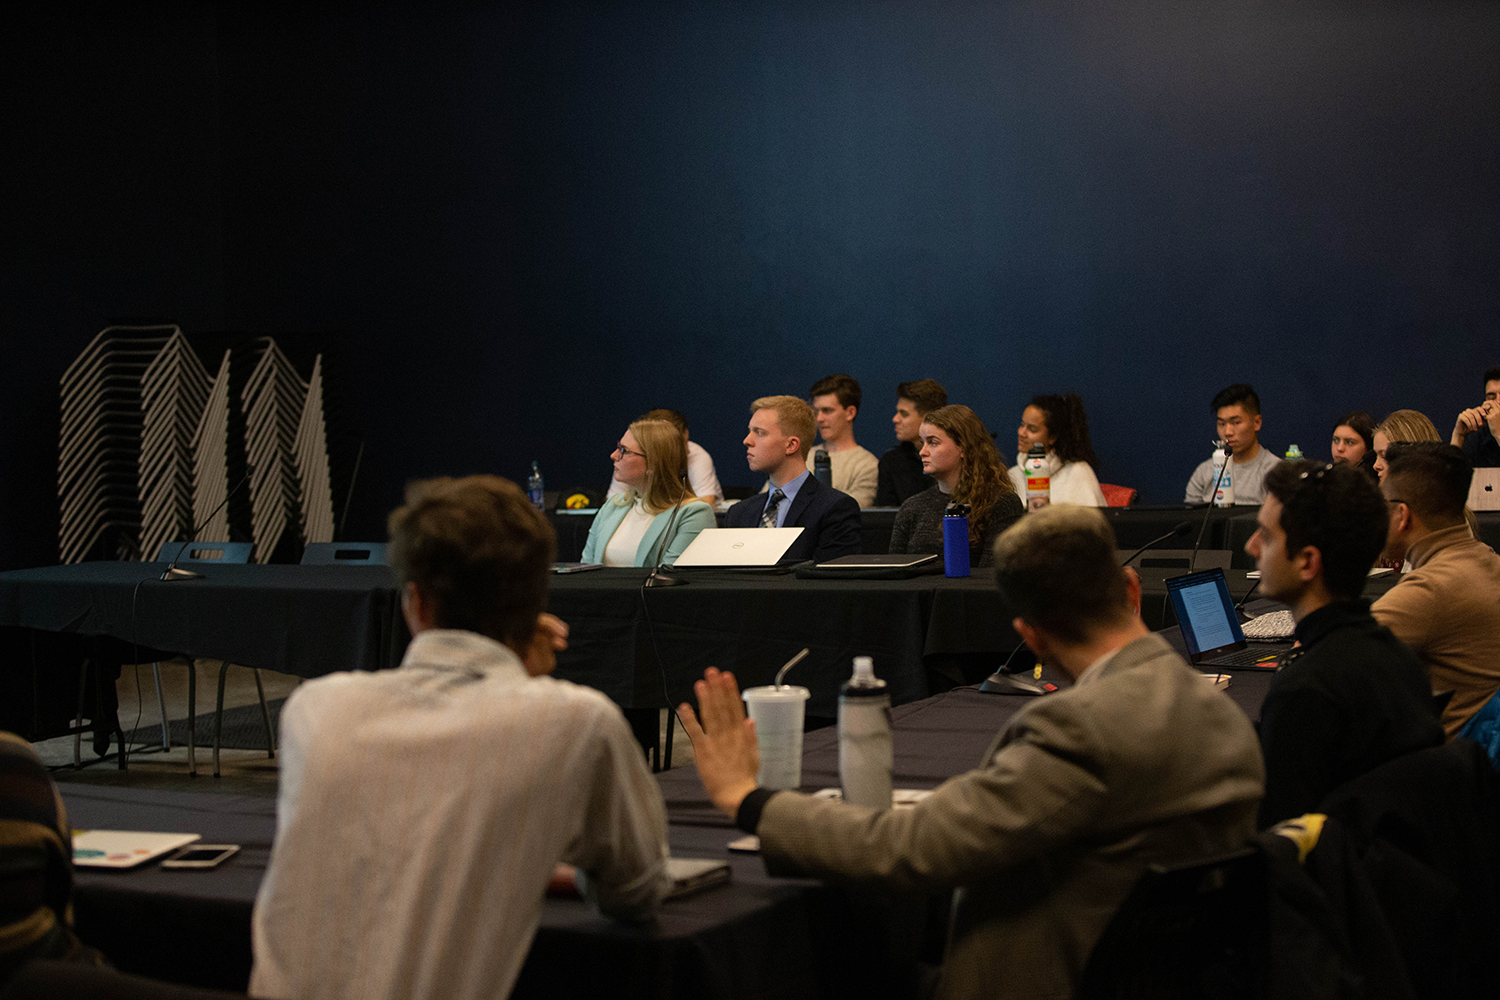 University of Iowa Student Government Senators listen to a presentation during a meeting in the IMU on Tuesday, Nov. 12, 2019.